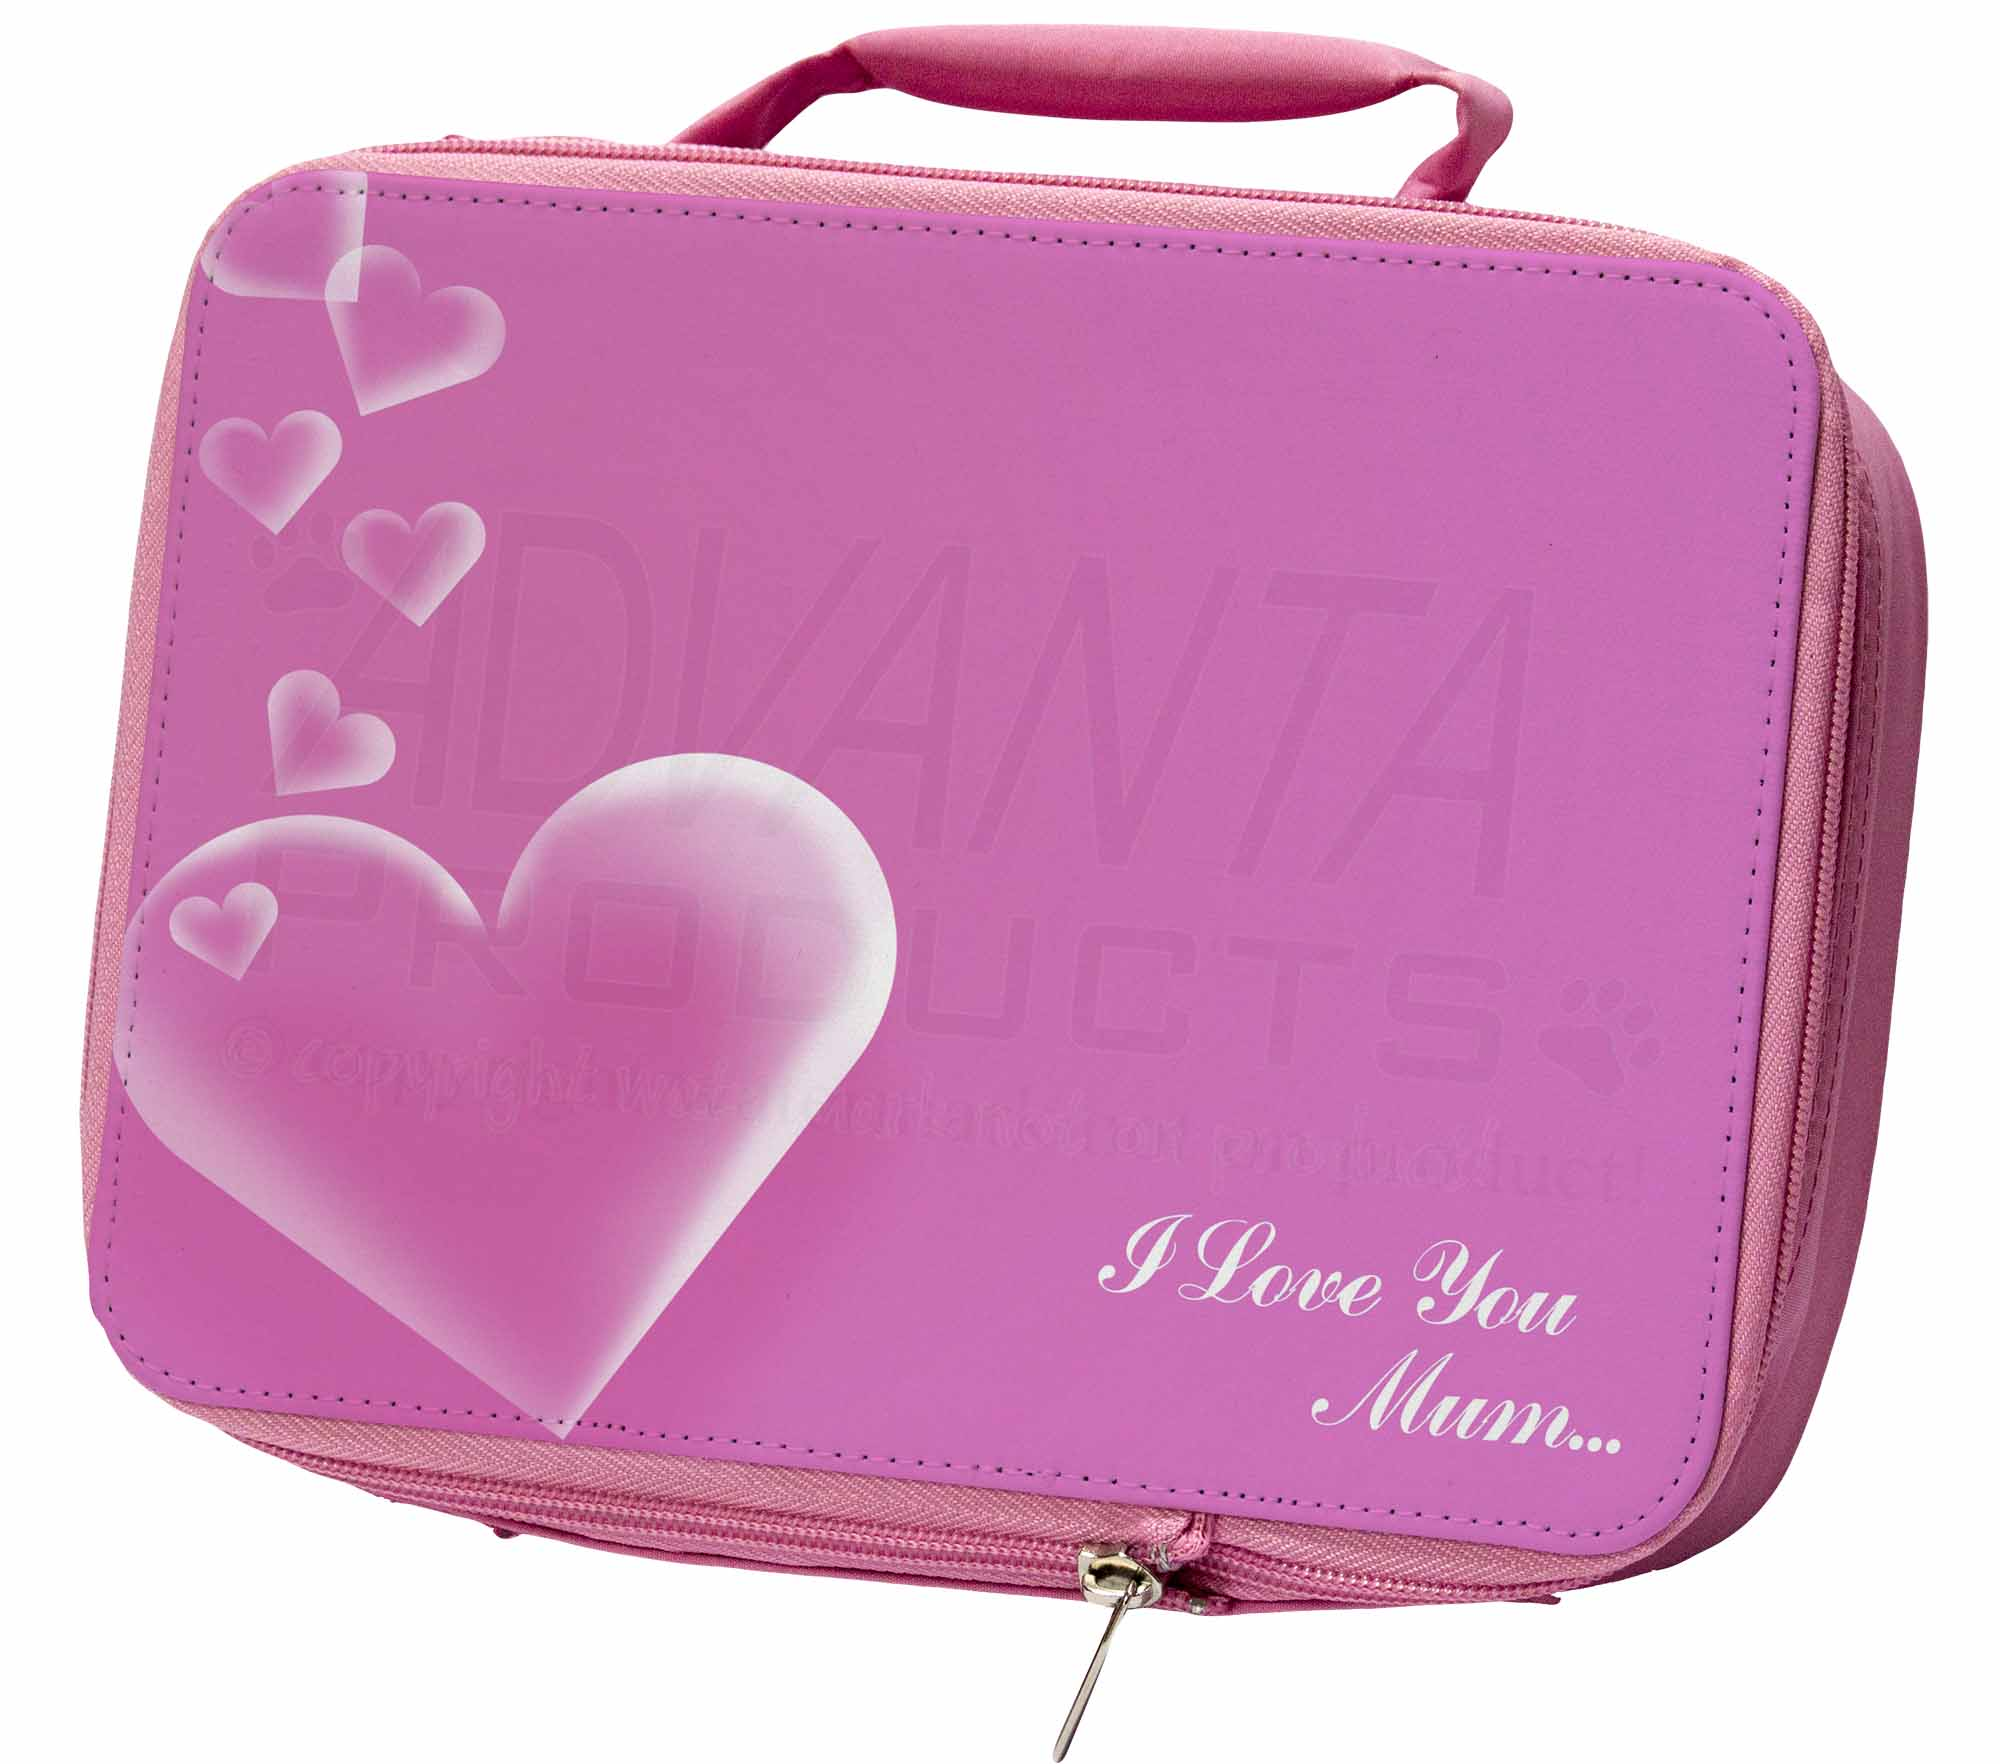 Pink Hearts 'i Love You Mum' Insulated Pink School Lunch Box Bag, Mum-h1lbp Ultima Tecnologia